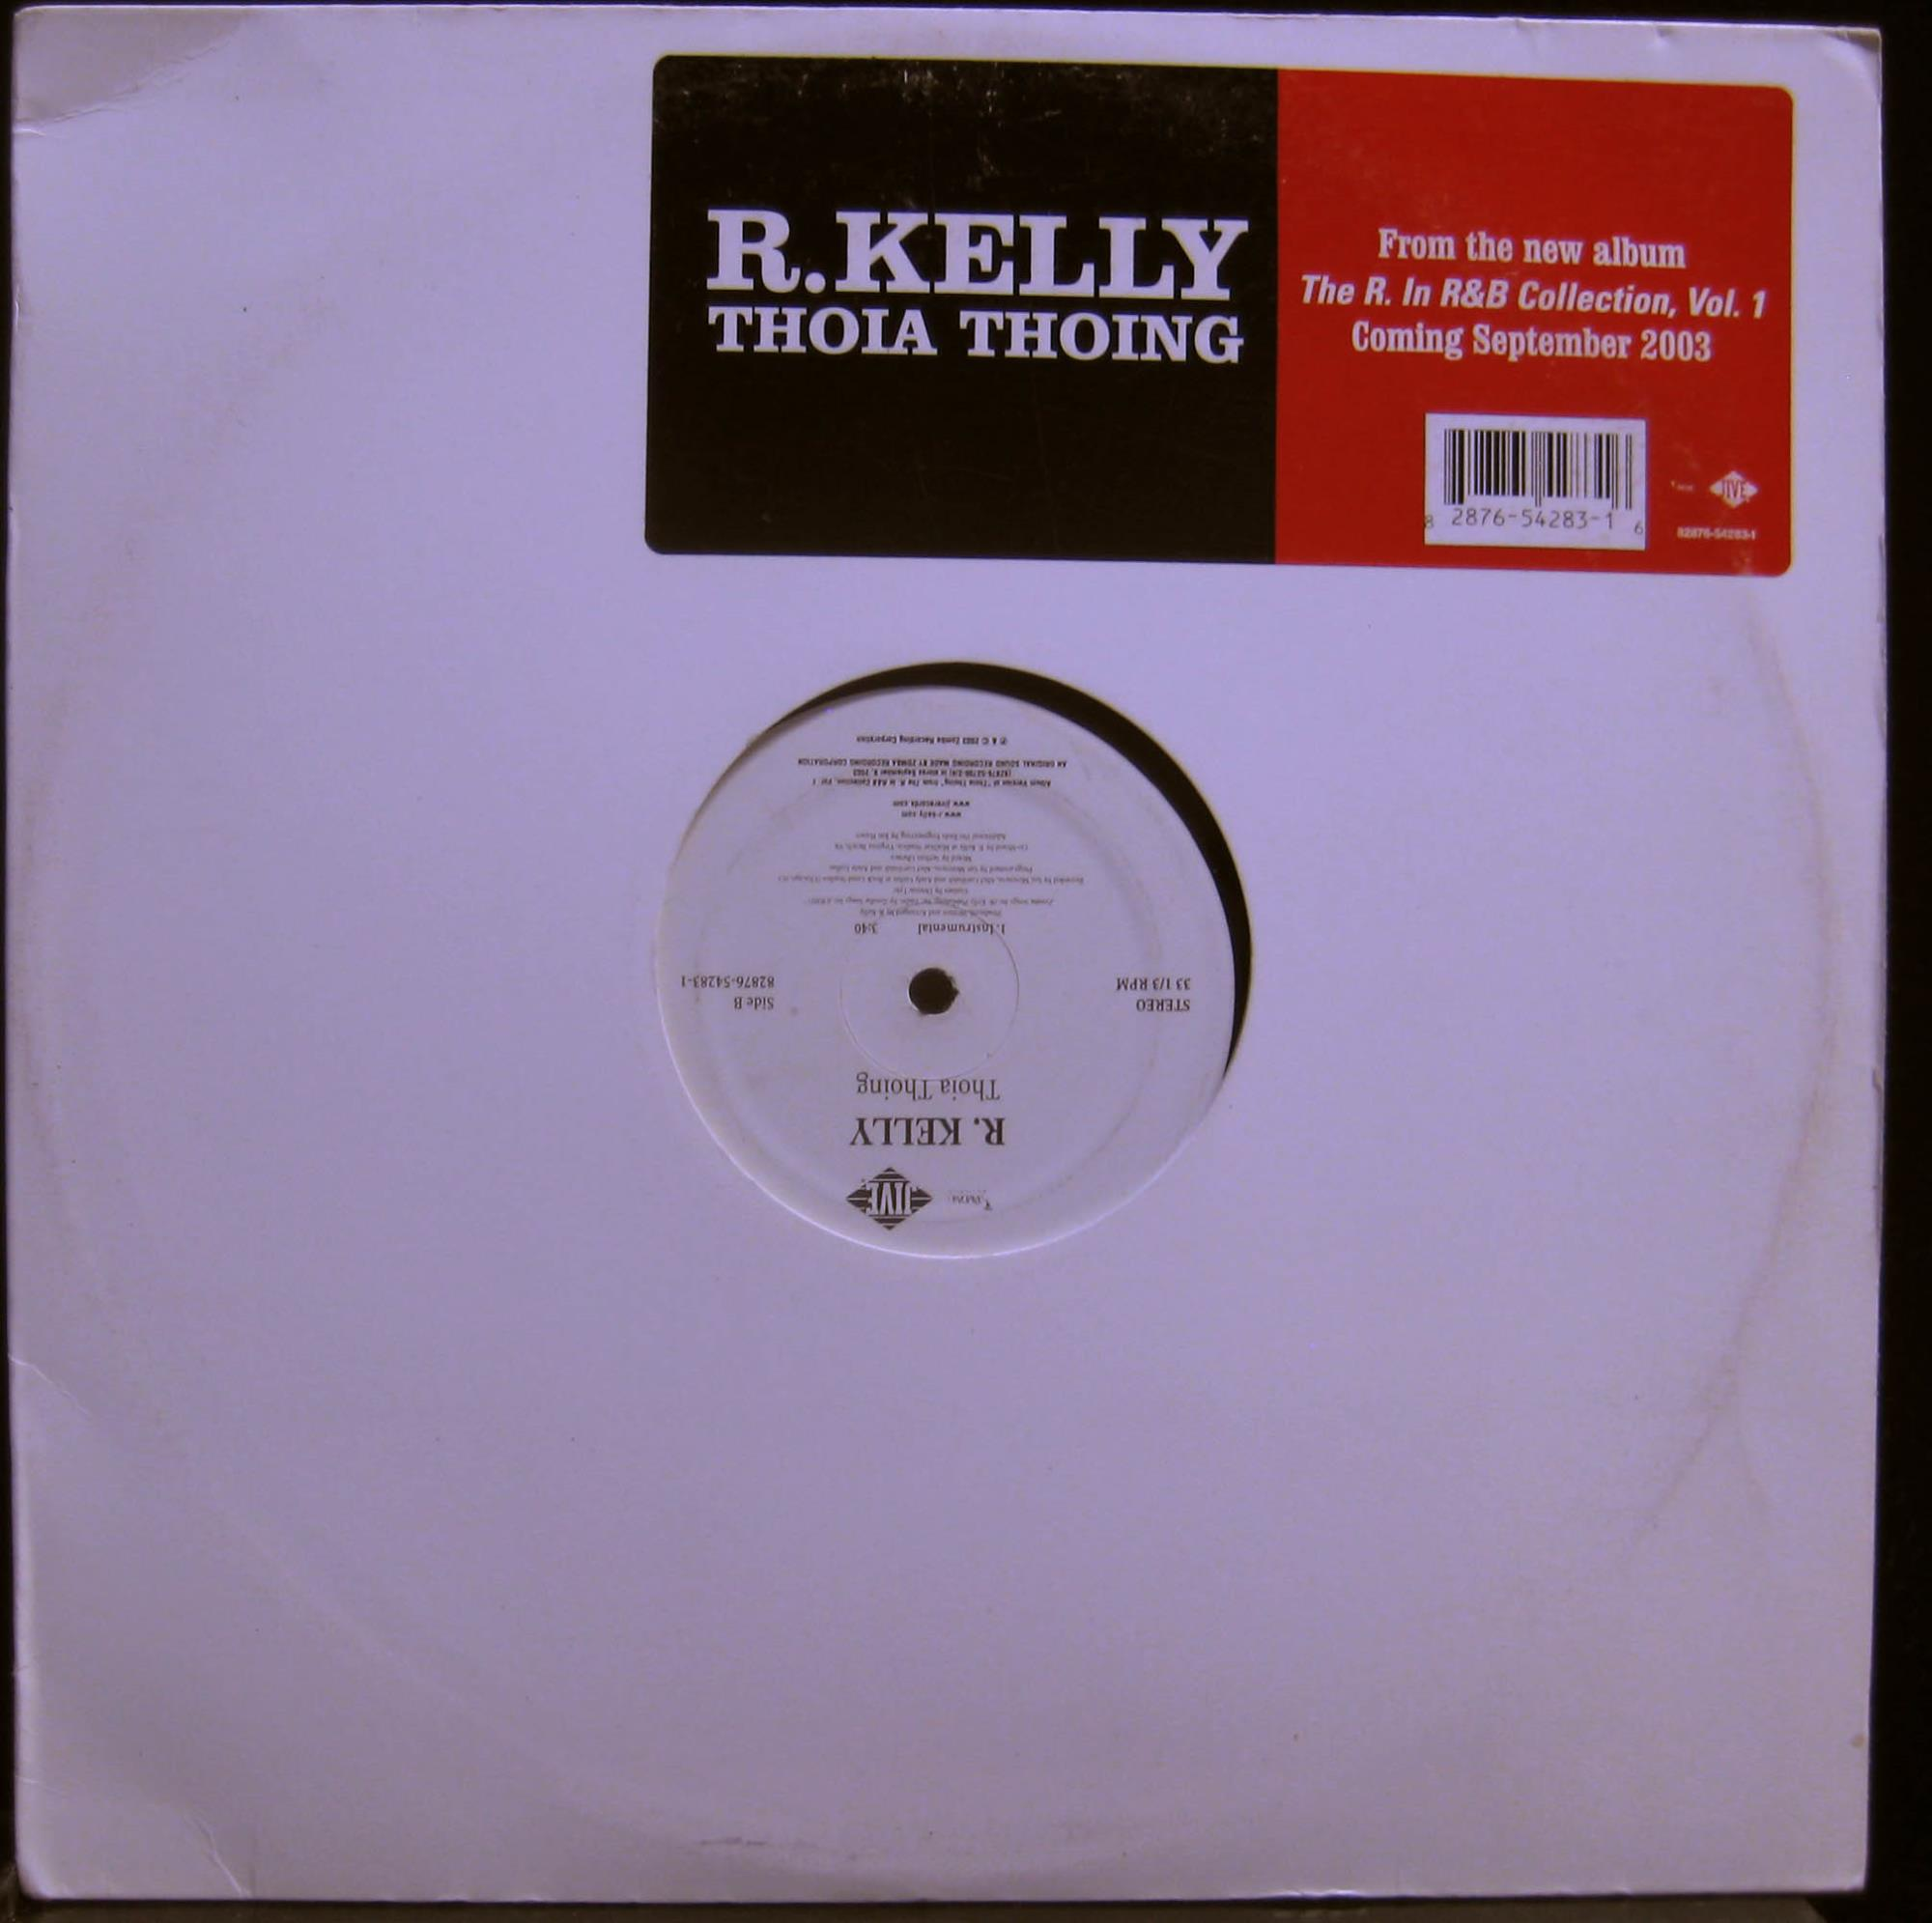 Rkelly-thoia thoing